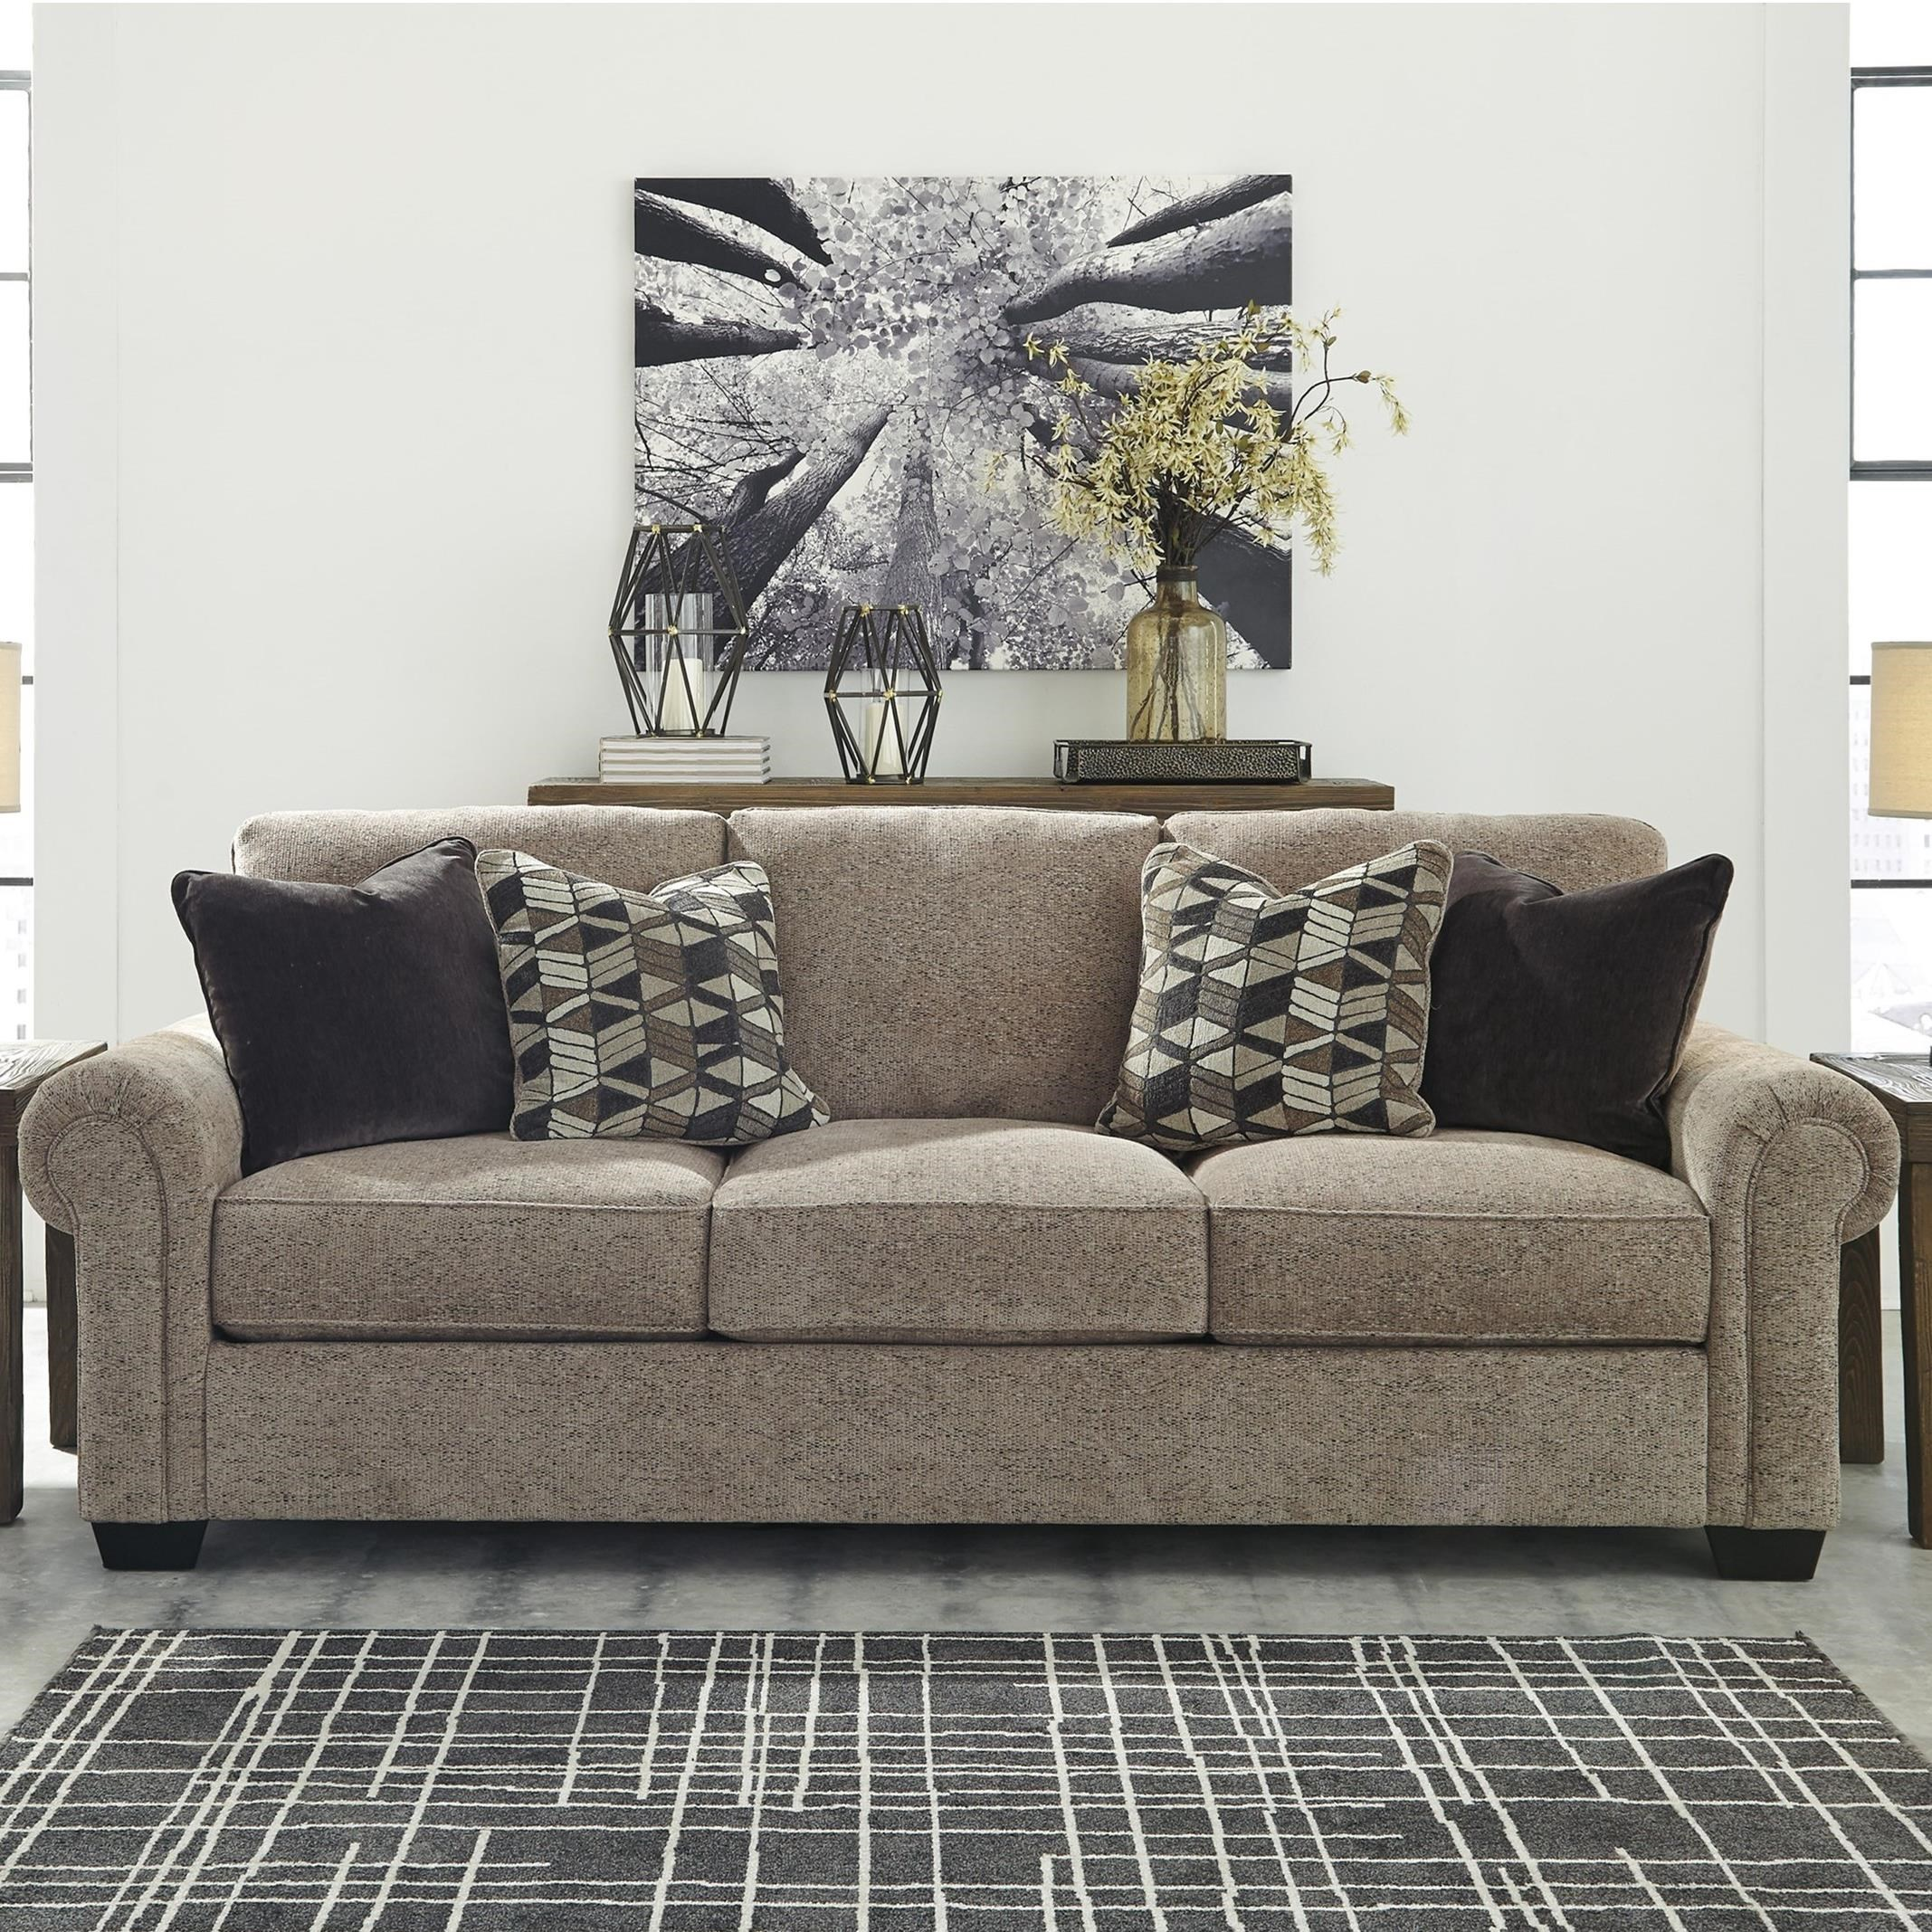 Ashley Furniture Current Sales Ad: Benchcraft By Ashley Fehmarn Stationary Sofa With Rolled